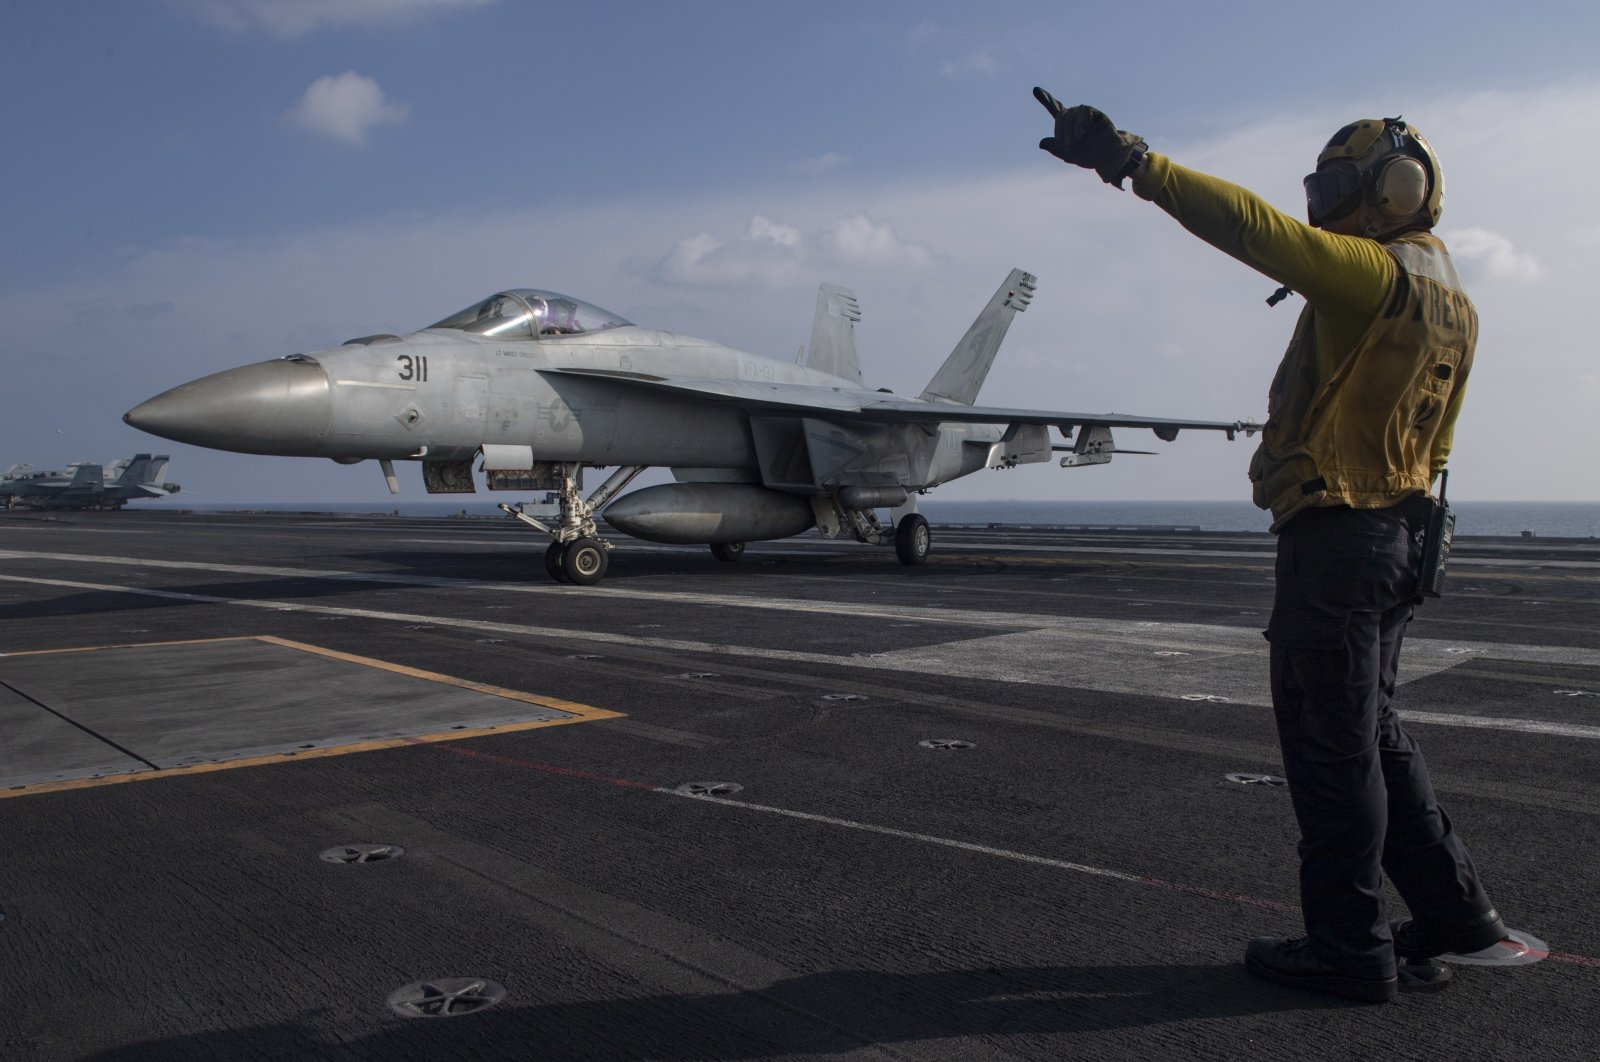 Aviation Boatswain's Mate 3rd Class Marnell Maglasang directs an F/A-18E Super Hornet on the flight deck of the aircraft carrier USS Nimitz in the Arabian Sea, Nov. 27, 2020. (Mass Communication Specialist 3rd Class Cheyenne Geletka/U.S. Navy via AP)